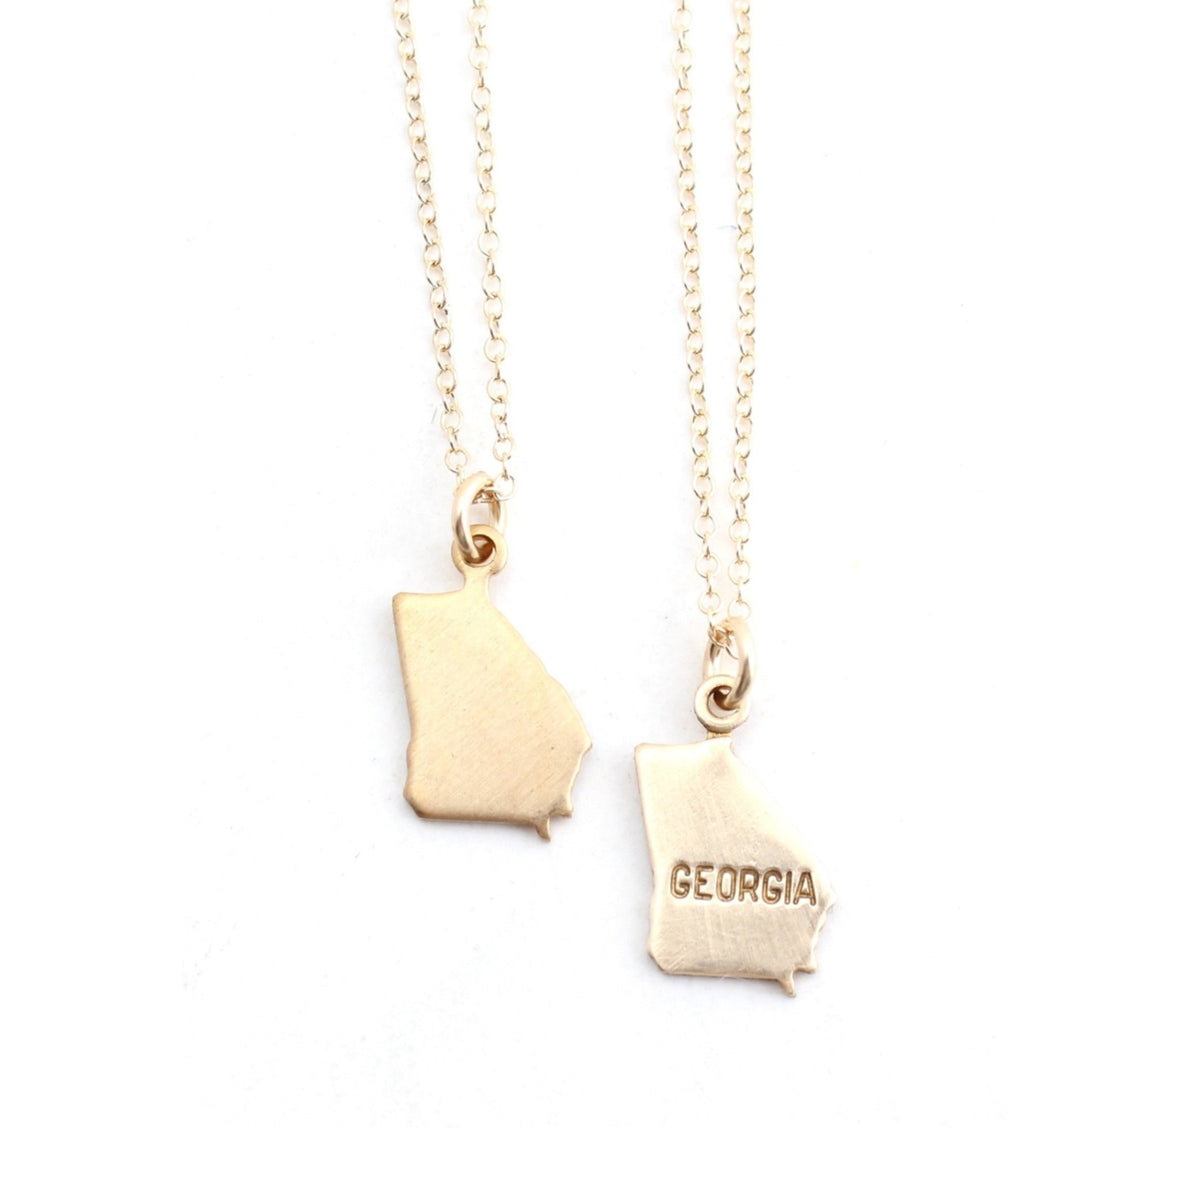 Georgia - charm necklace